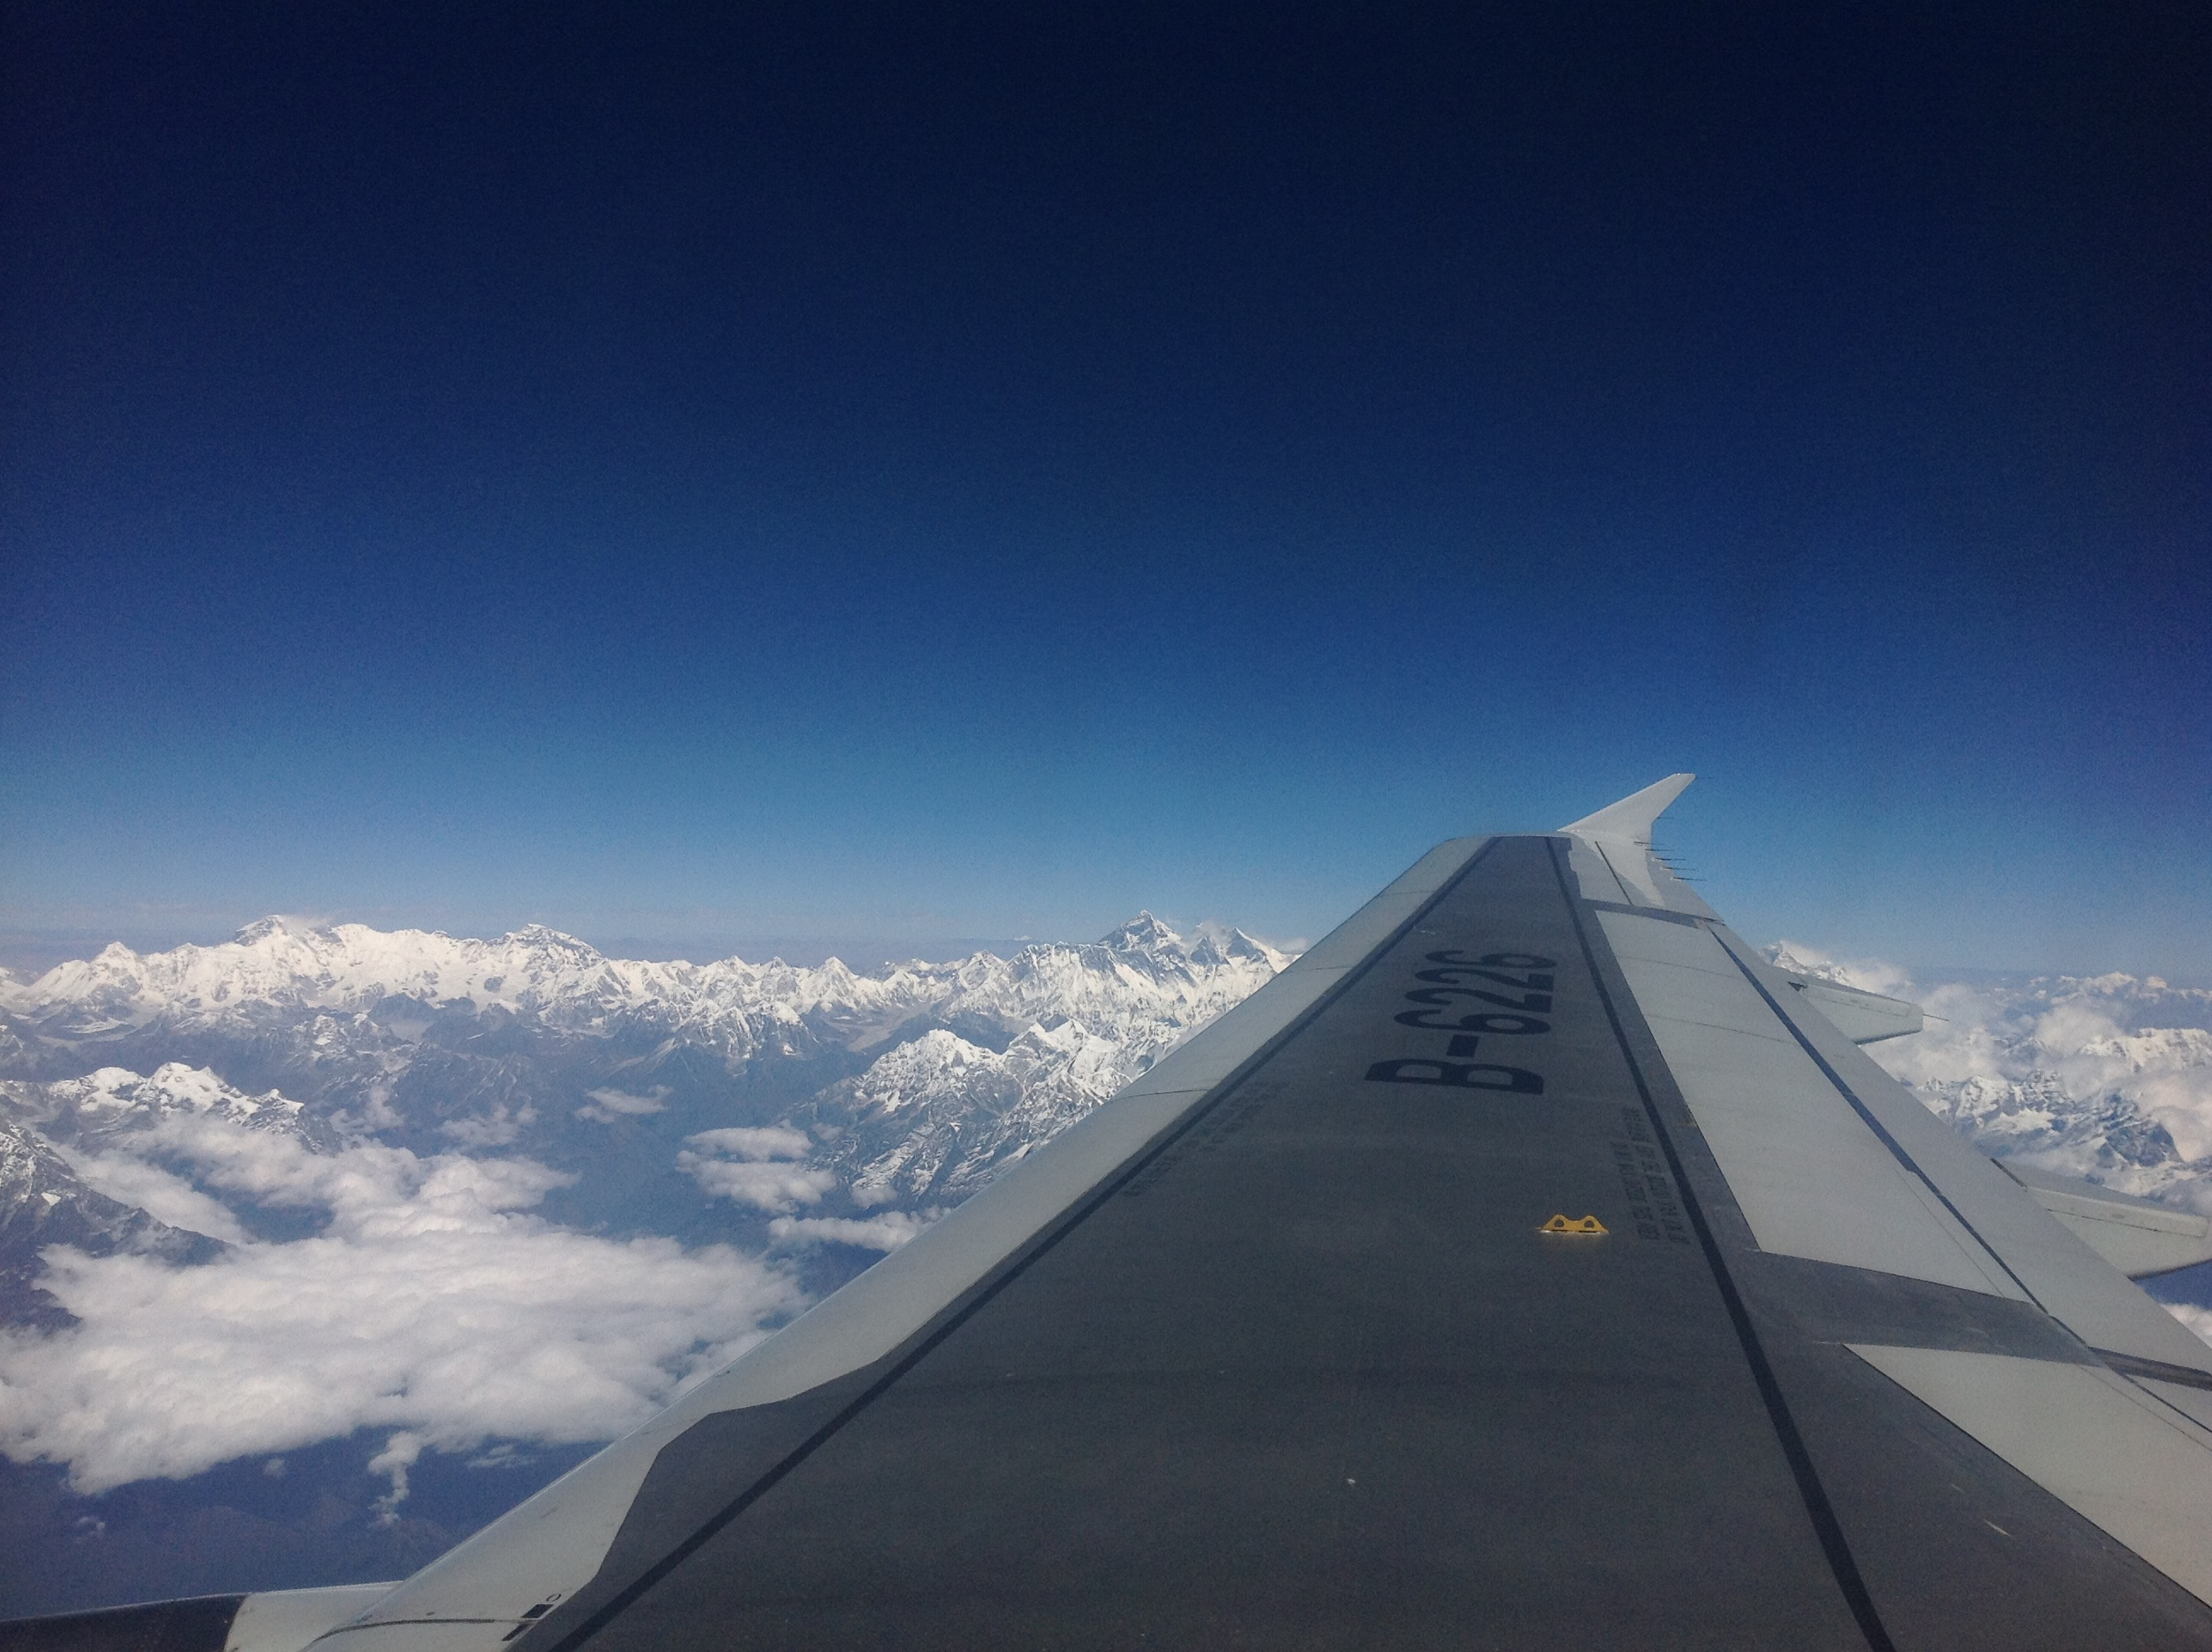 And finally a lovely view of Everest on the way home